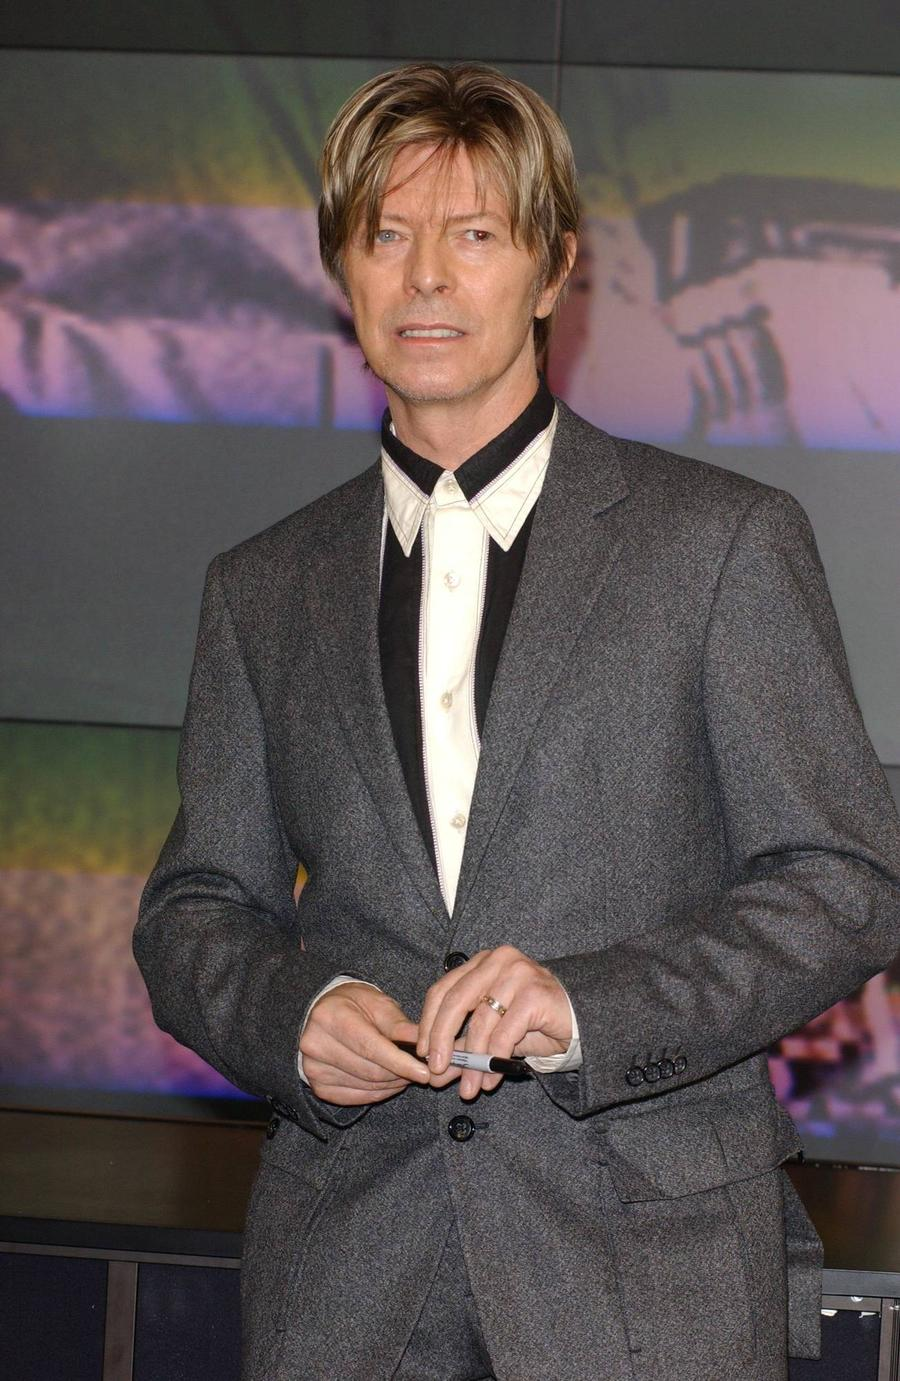 David Bowie's Final Years To Be Examined In New Documentary